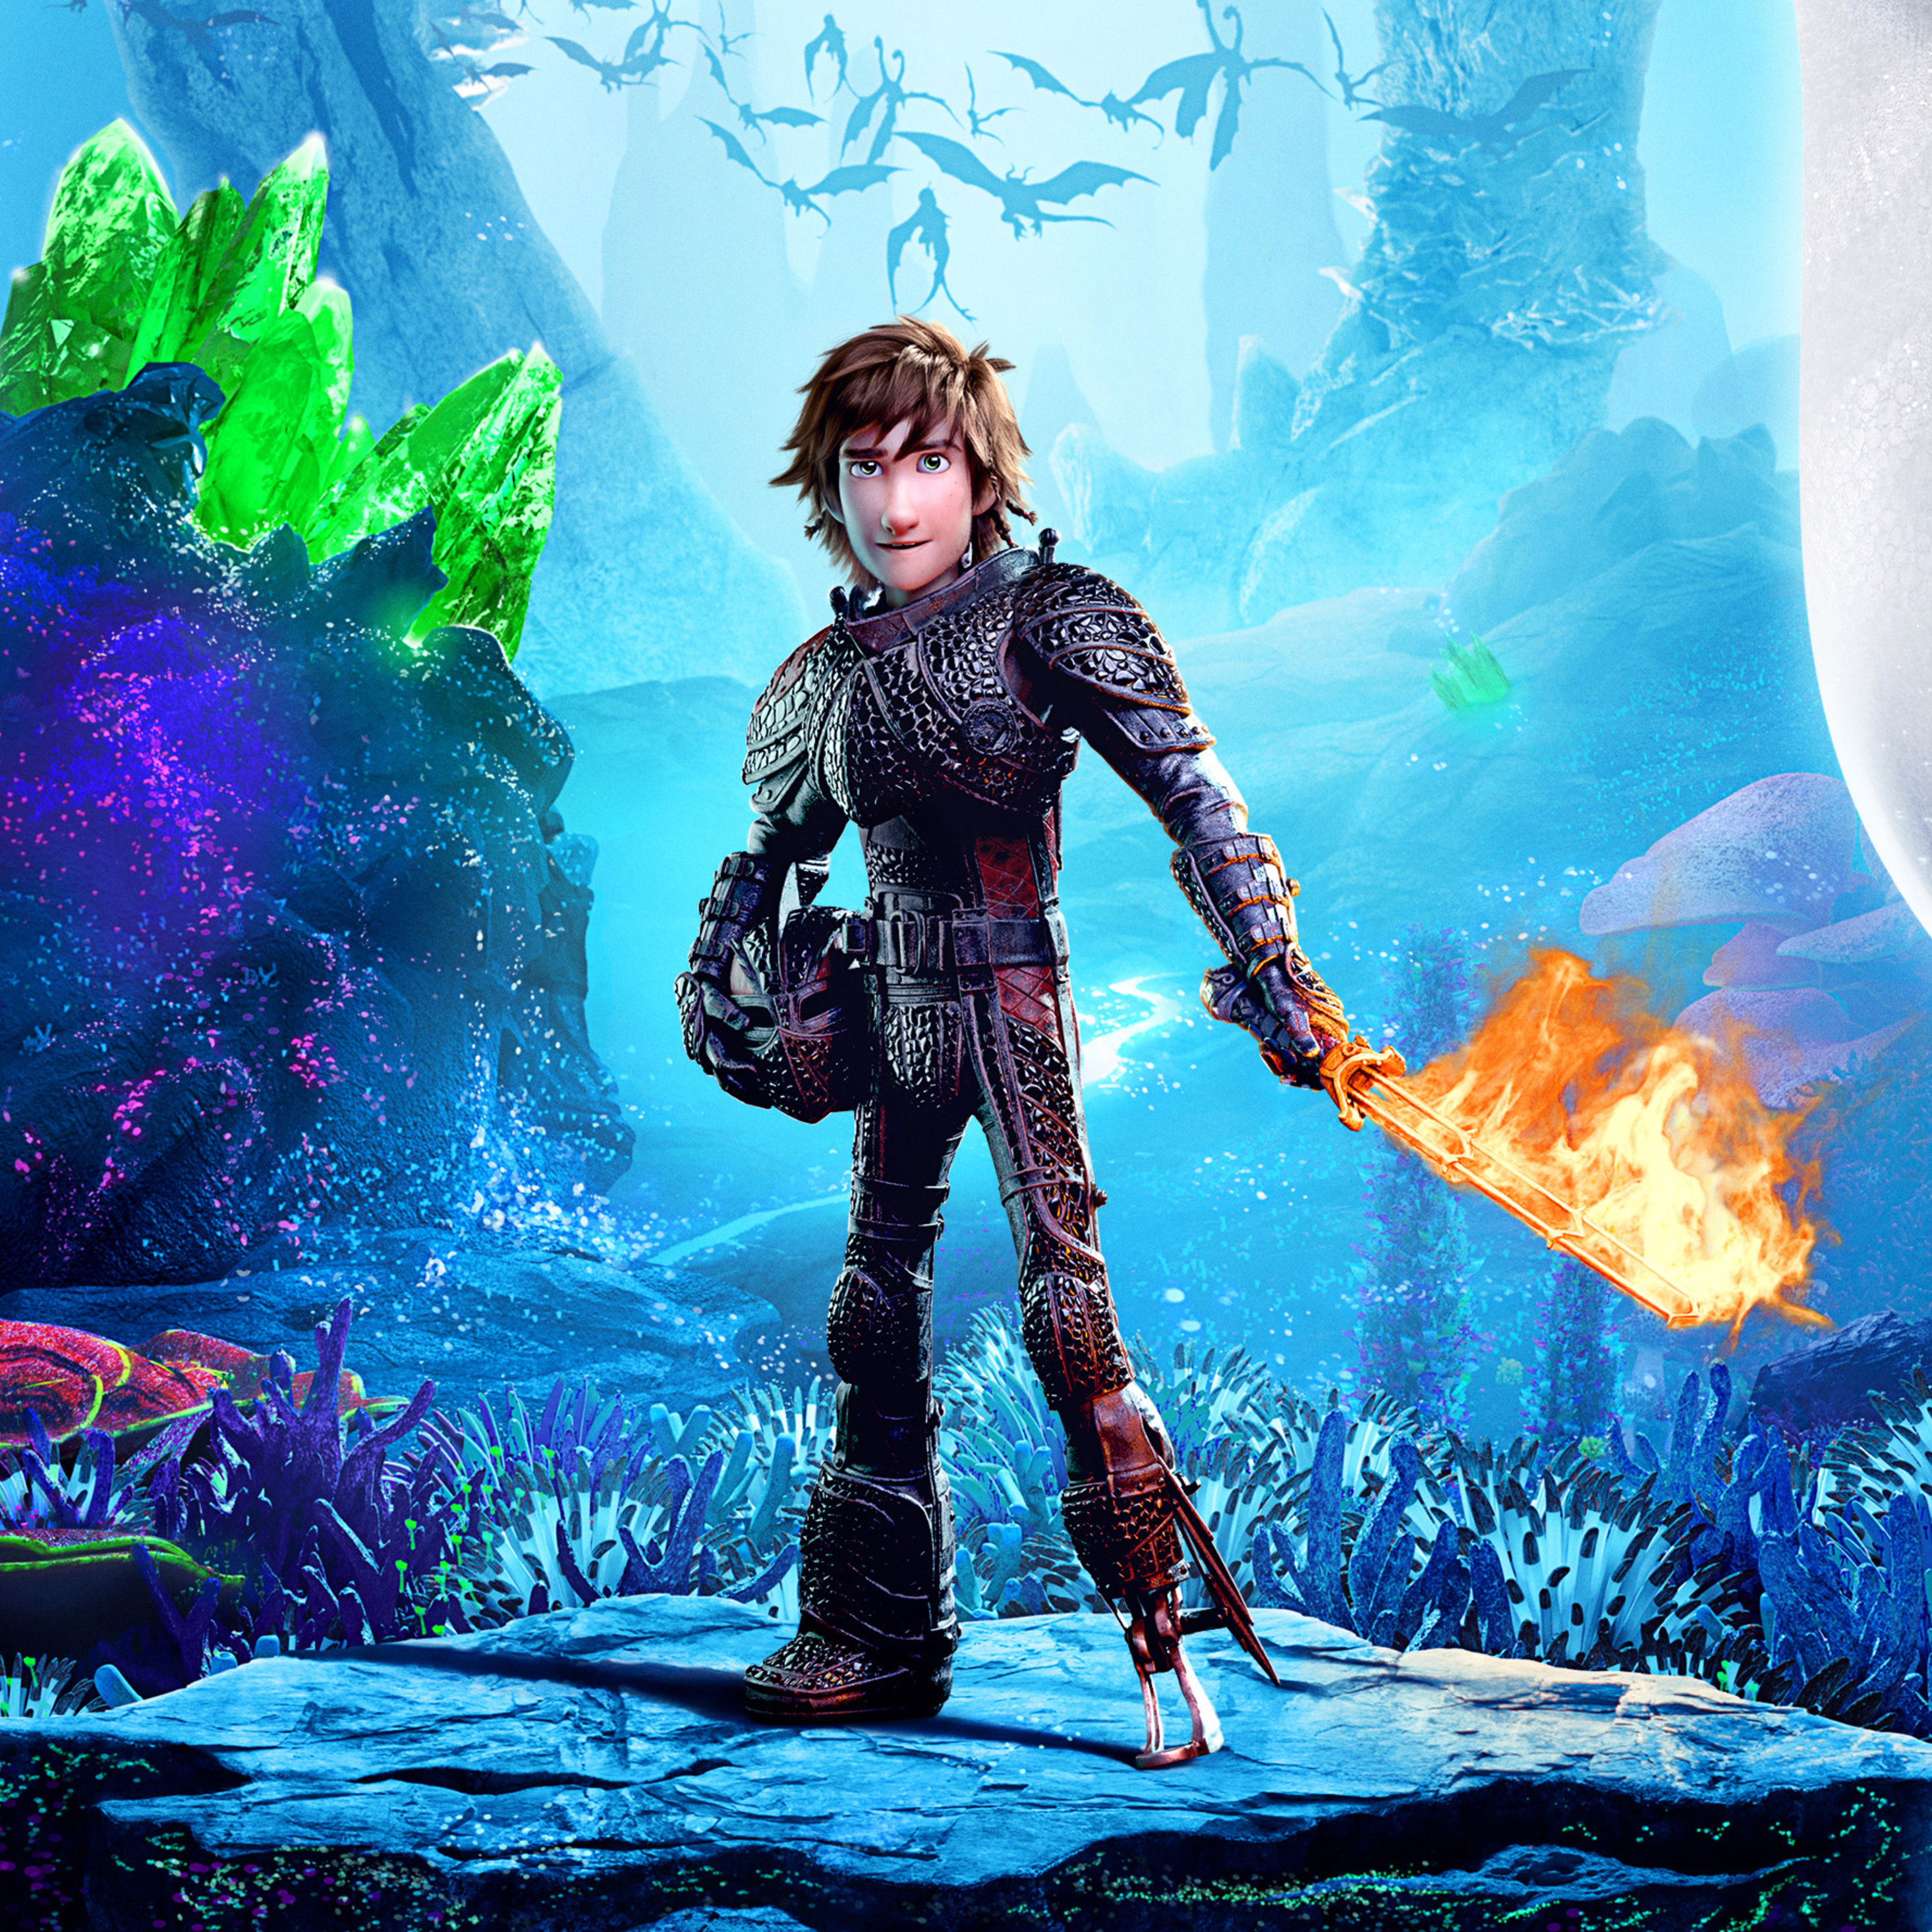 2932x2932 hiccup how to train your dragon 3 2019 4k ipad - How to train your dragon hd download ...